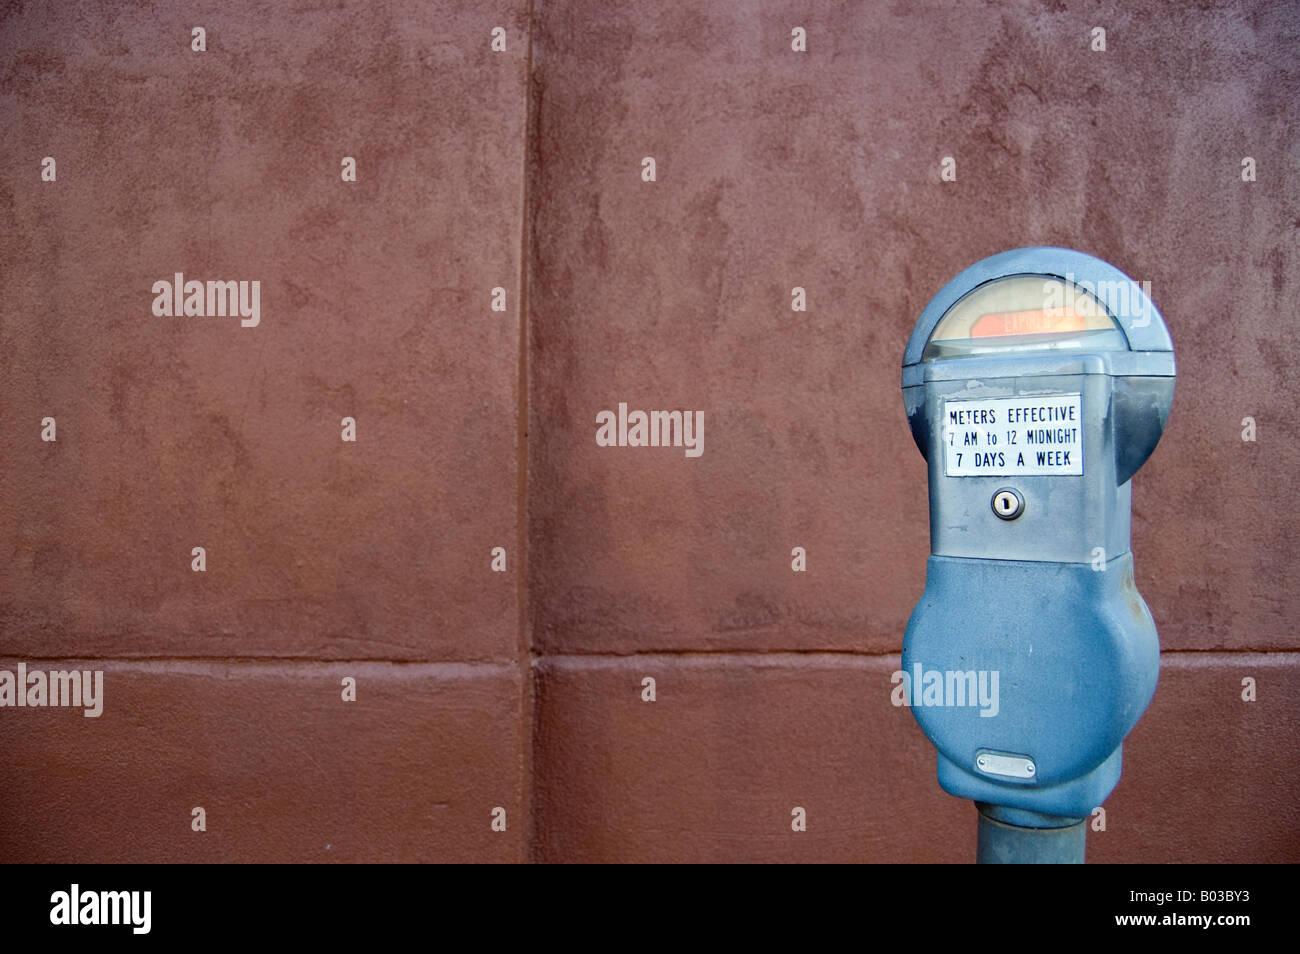 Parking meter in downtown Dallas Texas - Stock Image